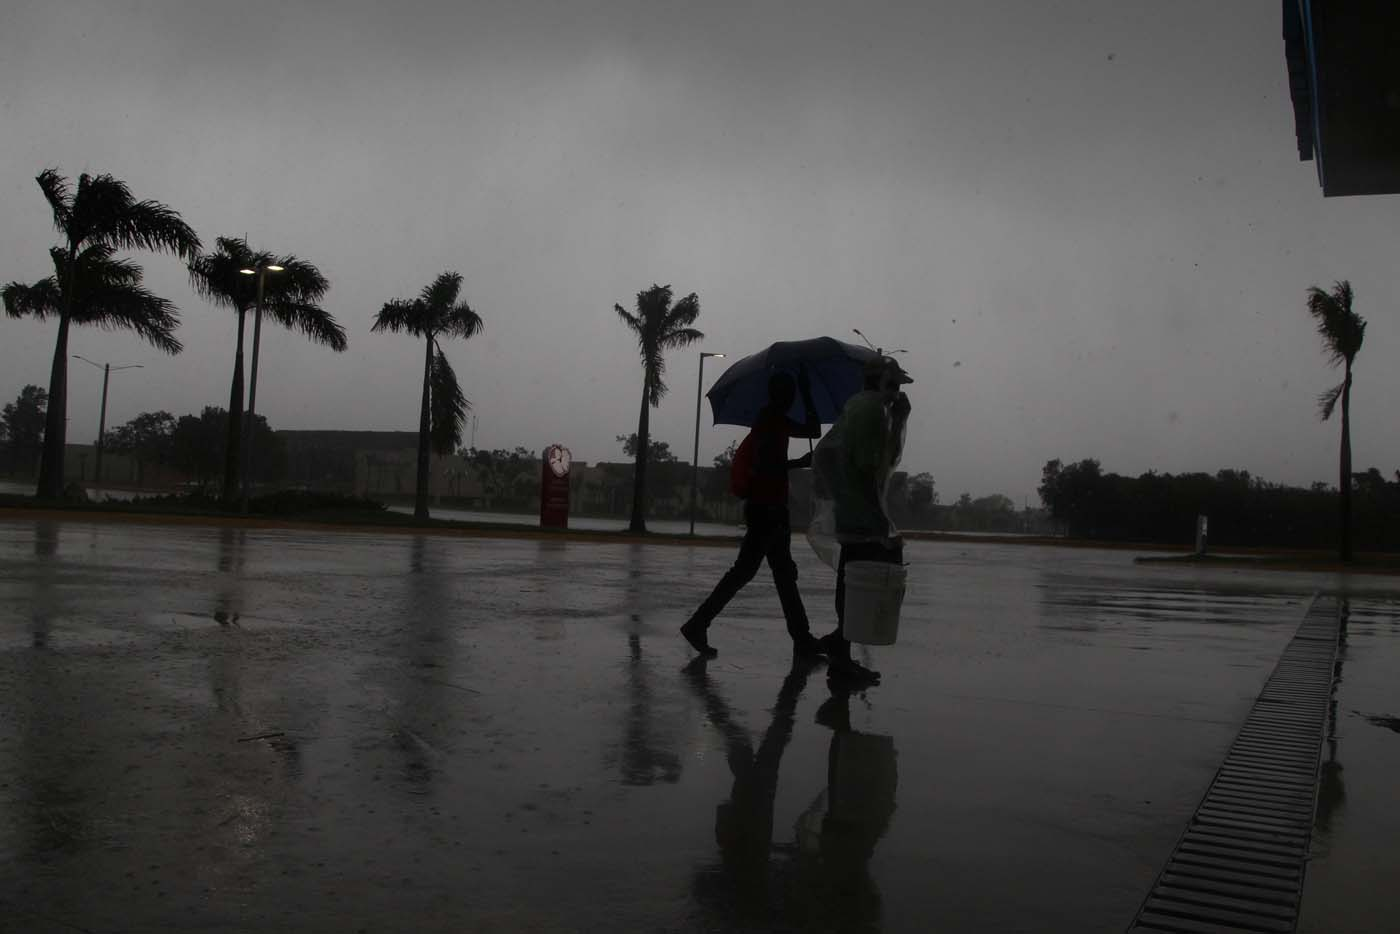 People walk before the arrival of Hurricane Maria in Punta Cana, Dominican Republic, September 20, 2017. REUTERS/Ricardo Rojas